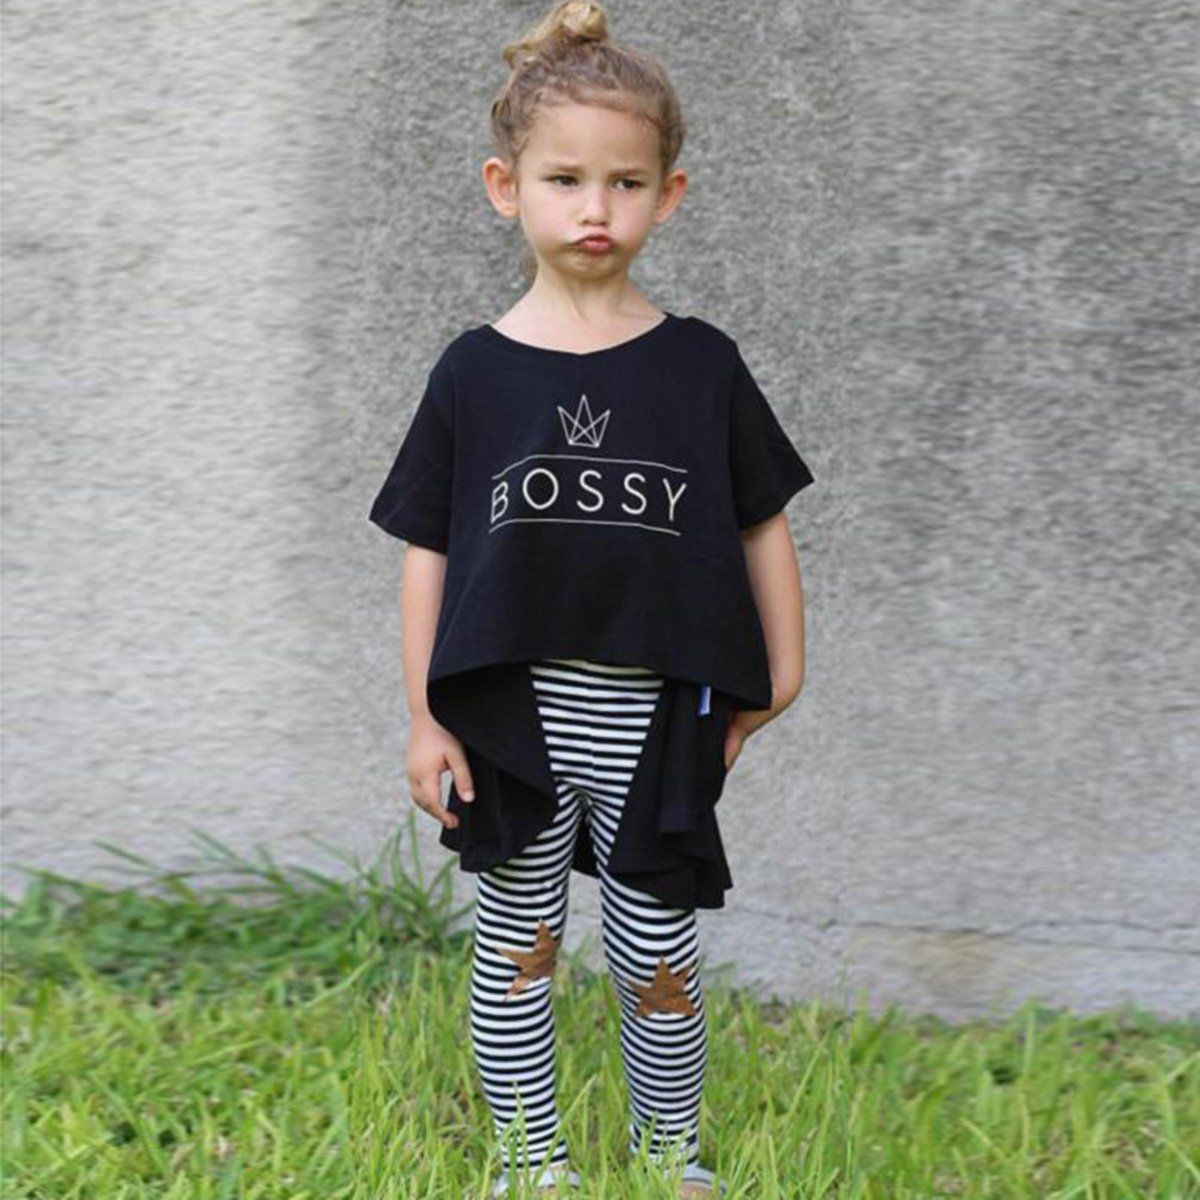 2PCS Toddler Kids Baby Girl Bossy Letter T Shirt Tops Pants Leggings Outfit Clothes Set Irregular Shirt Dress+Pants Clothes Set картина по номерам